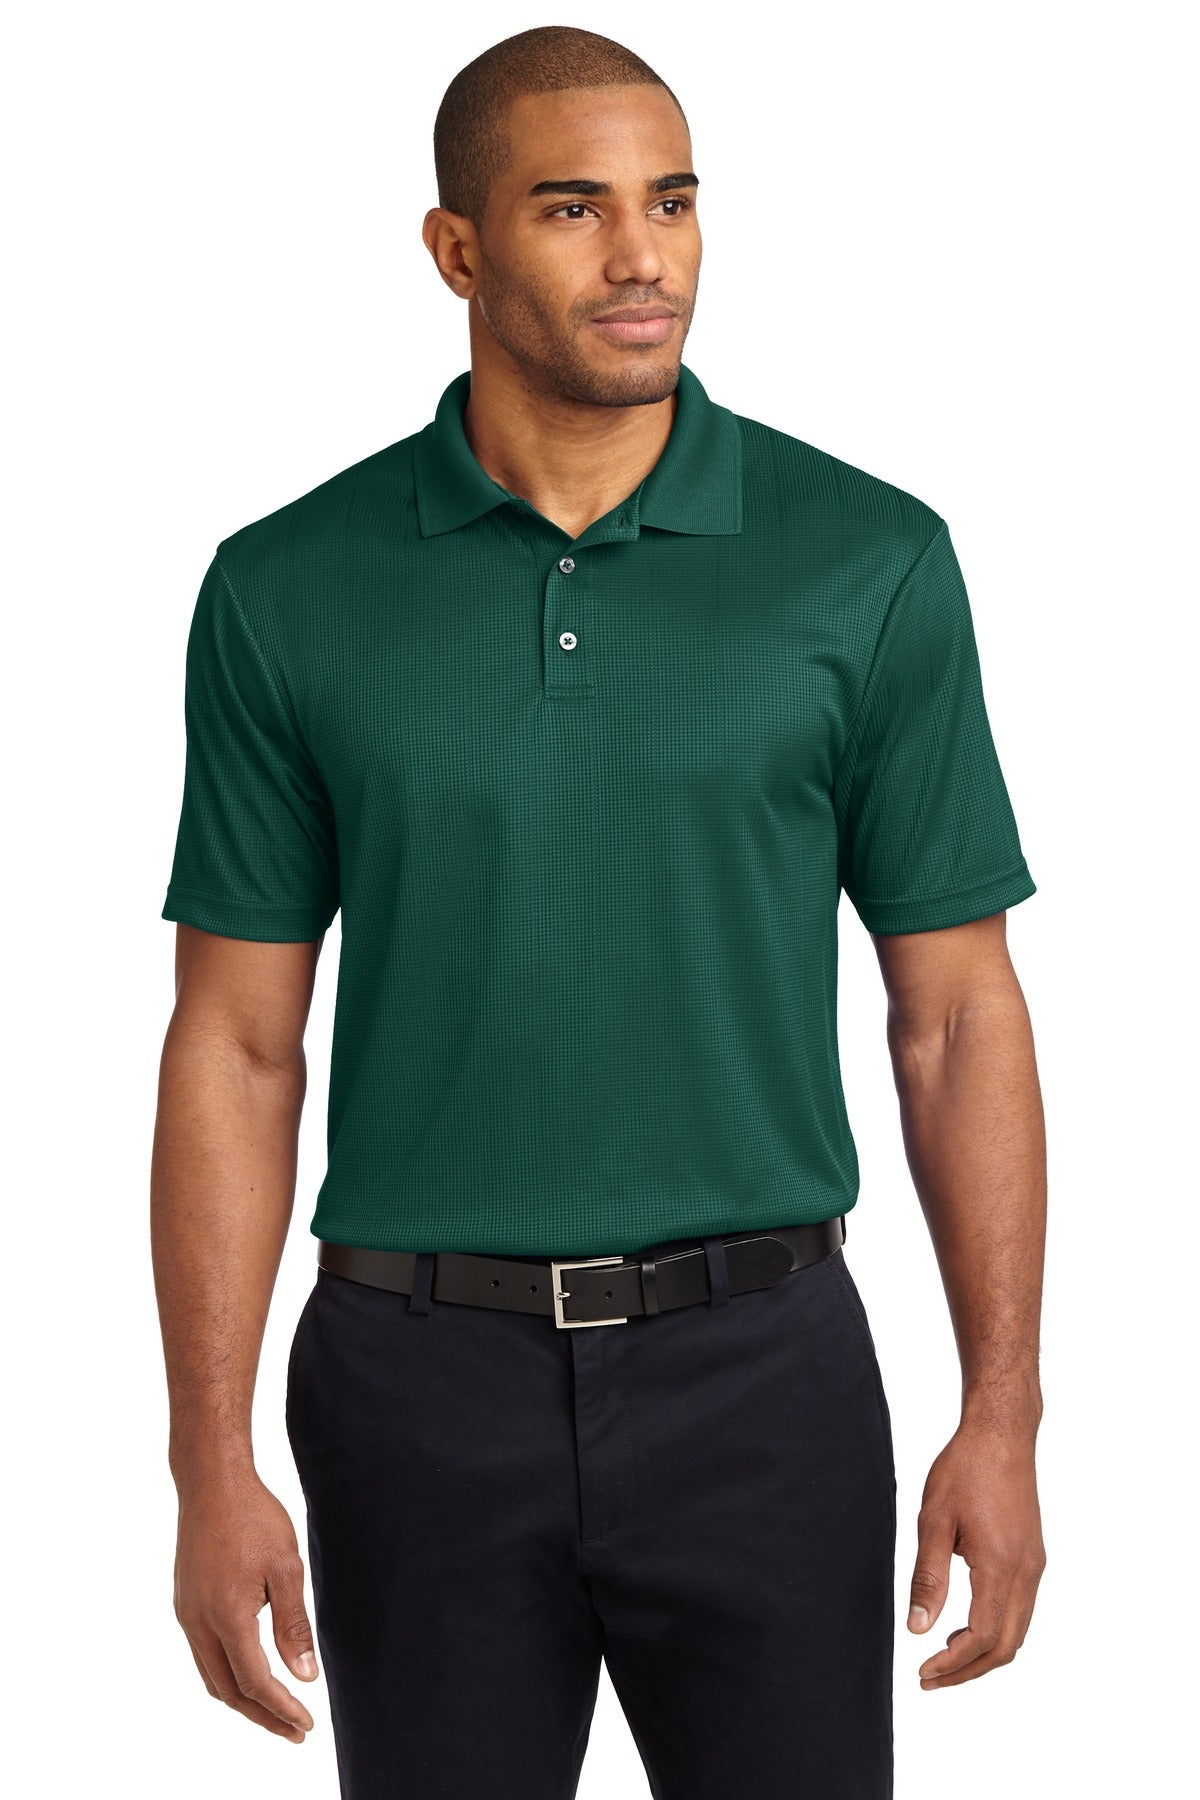 Navy Port Authority Silk Touch Performance Polo.